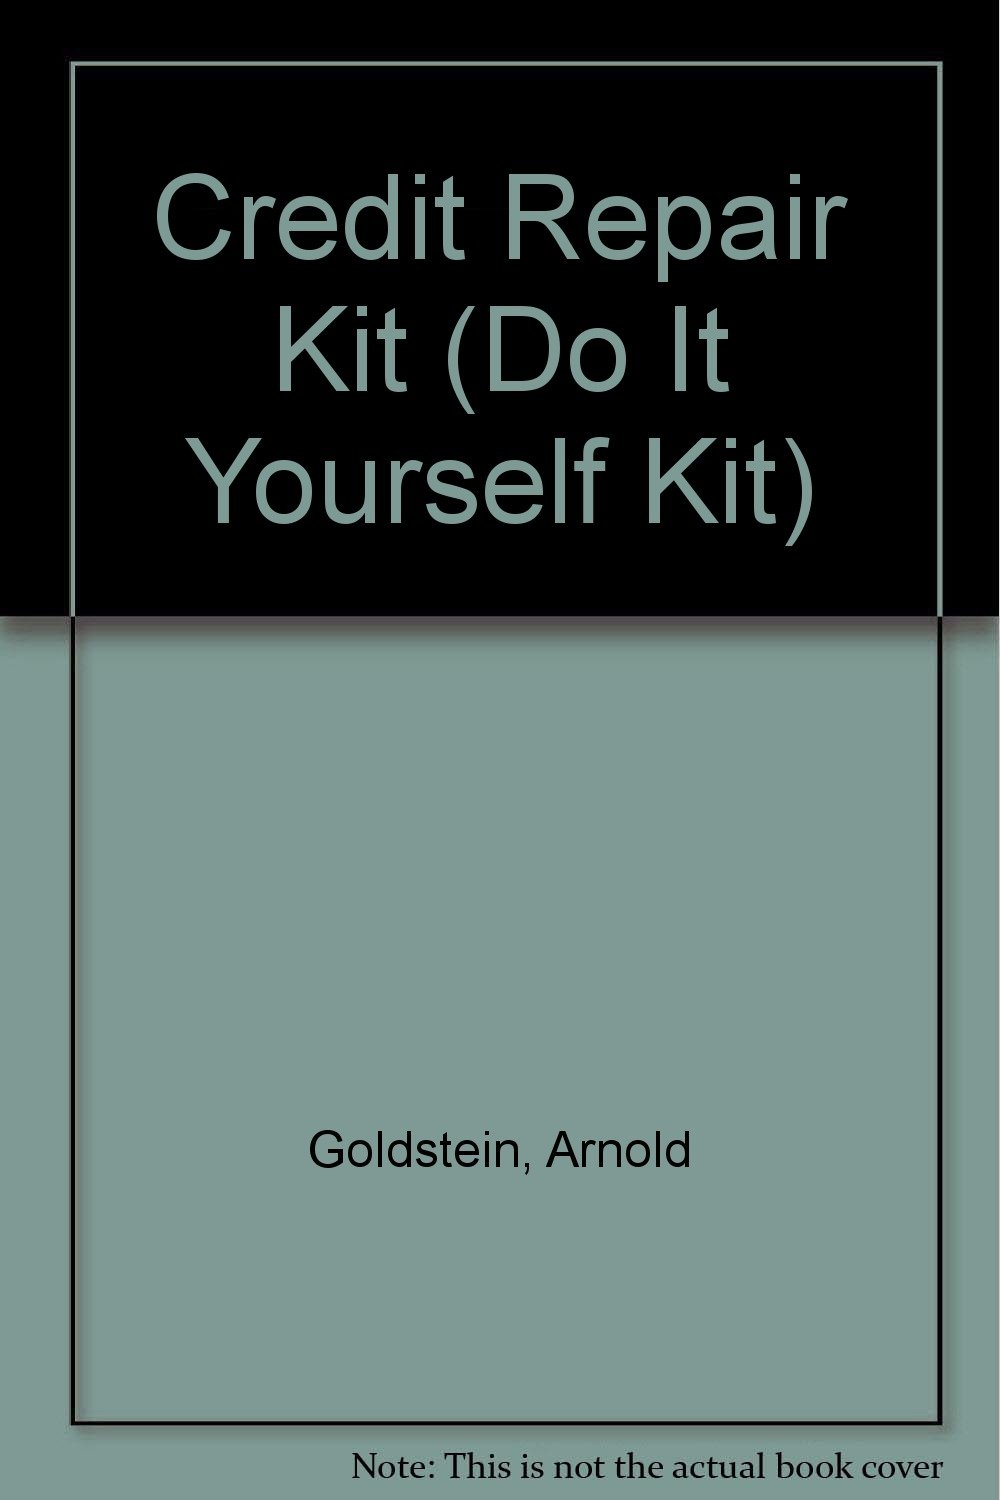 Credit repair kit do it yourself kit arnold goldstein credit repair kit do it yourself kit arnold goldstein 9781563821387 amazon books solutioingenieria Image collections